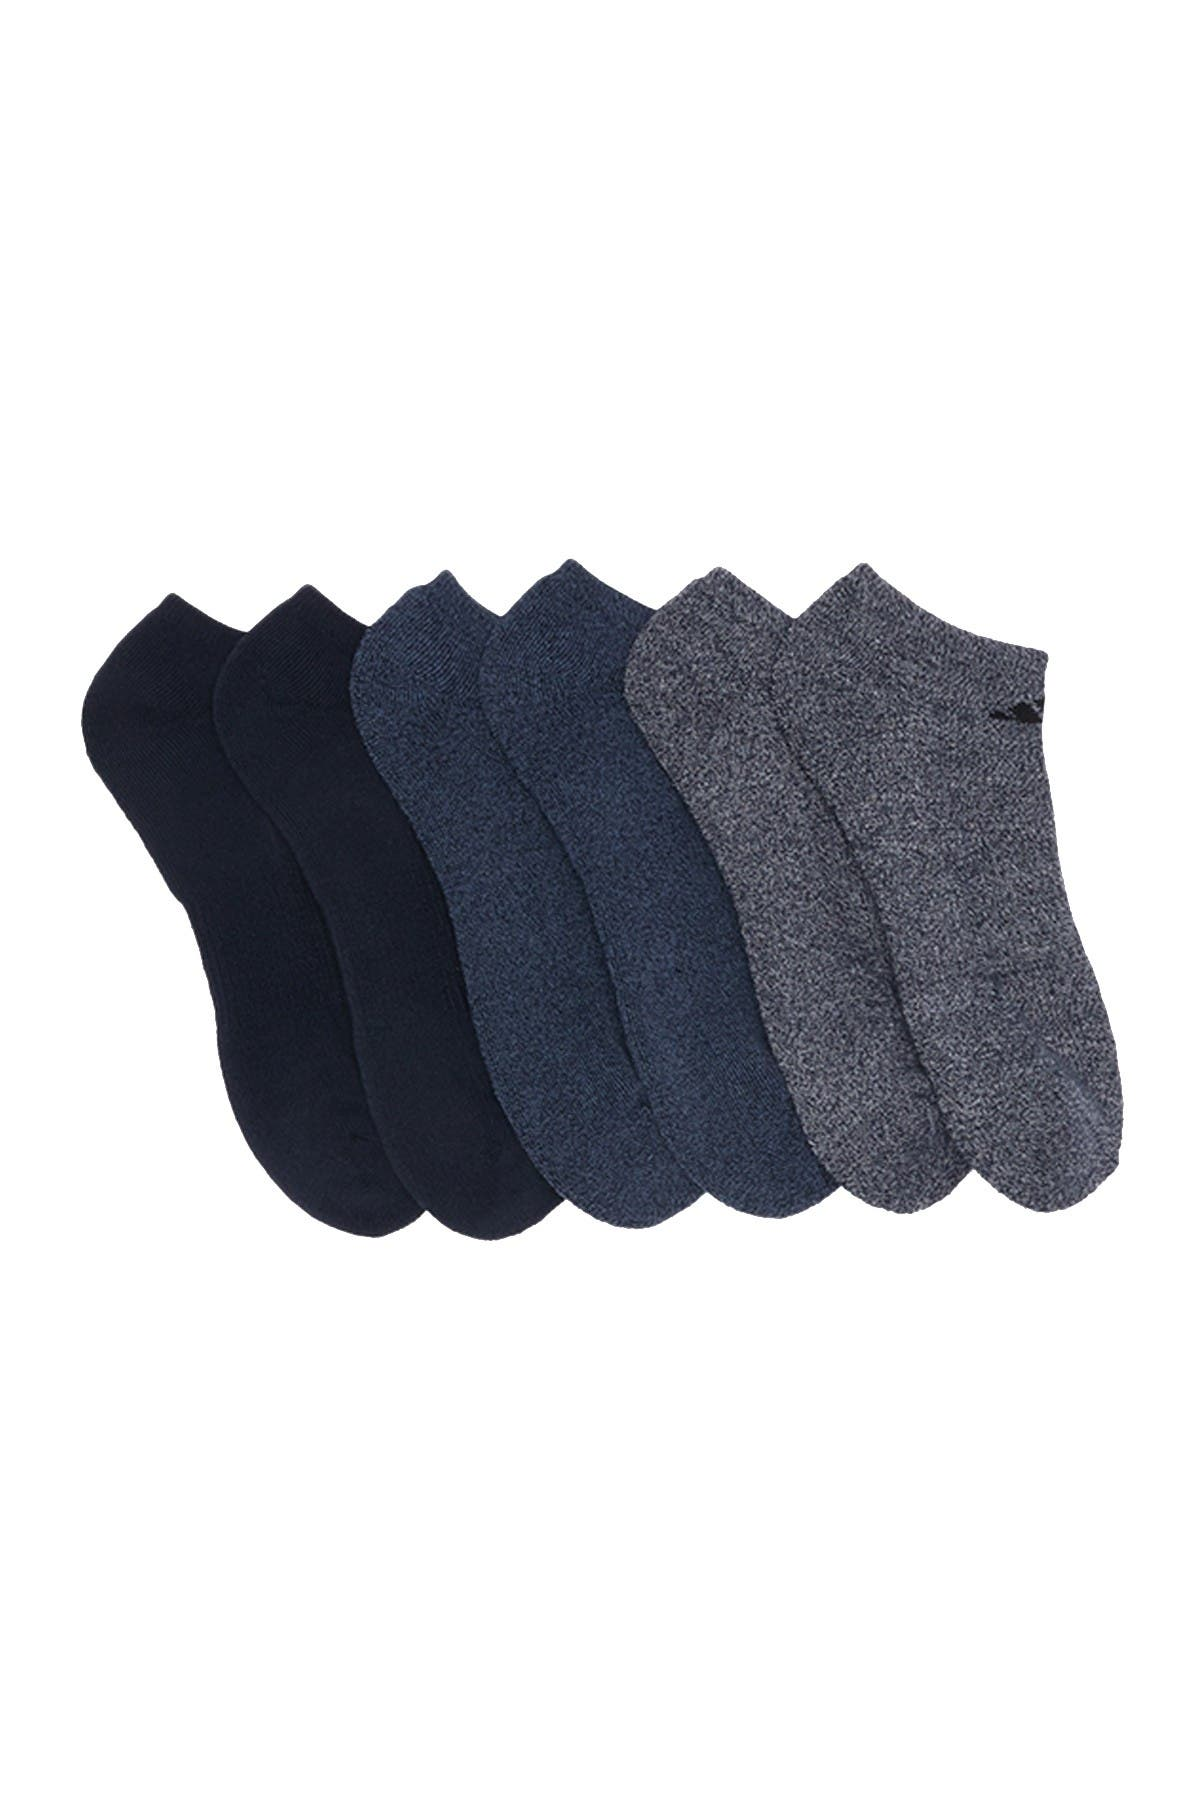 Image of adidas Superlite No Show Socks - Pack of 6